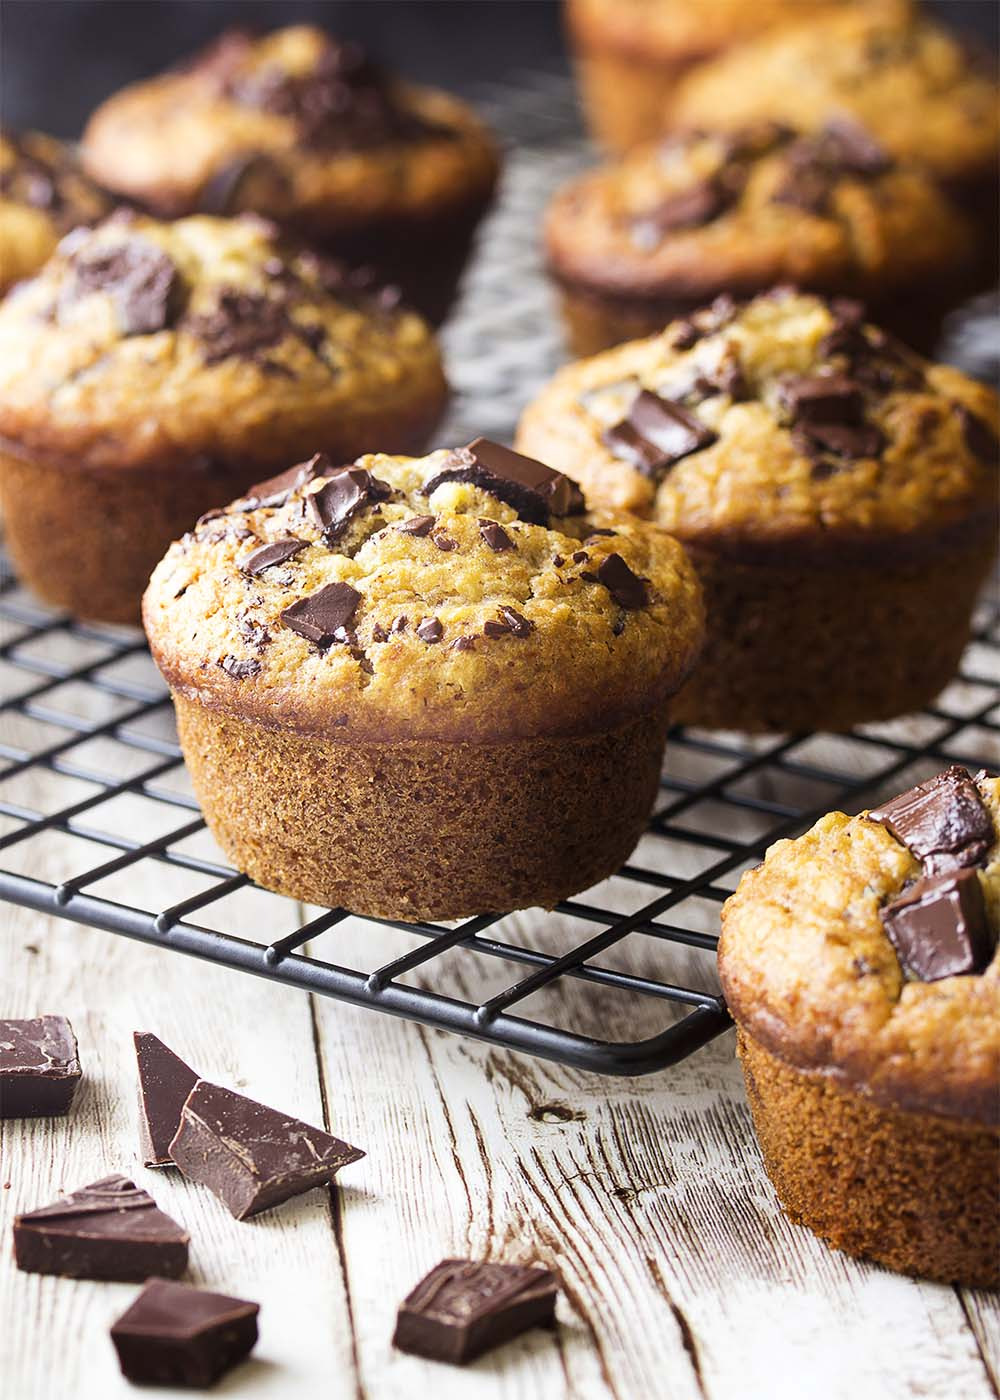 Serveral chocolate banana oat muffins on a cooling rack. Each golden brown with a domed top.